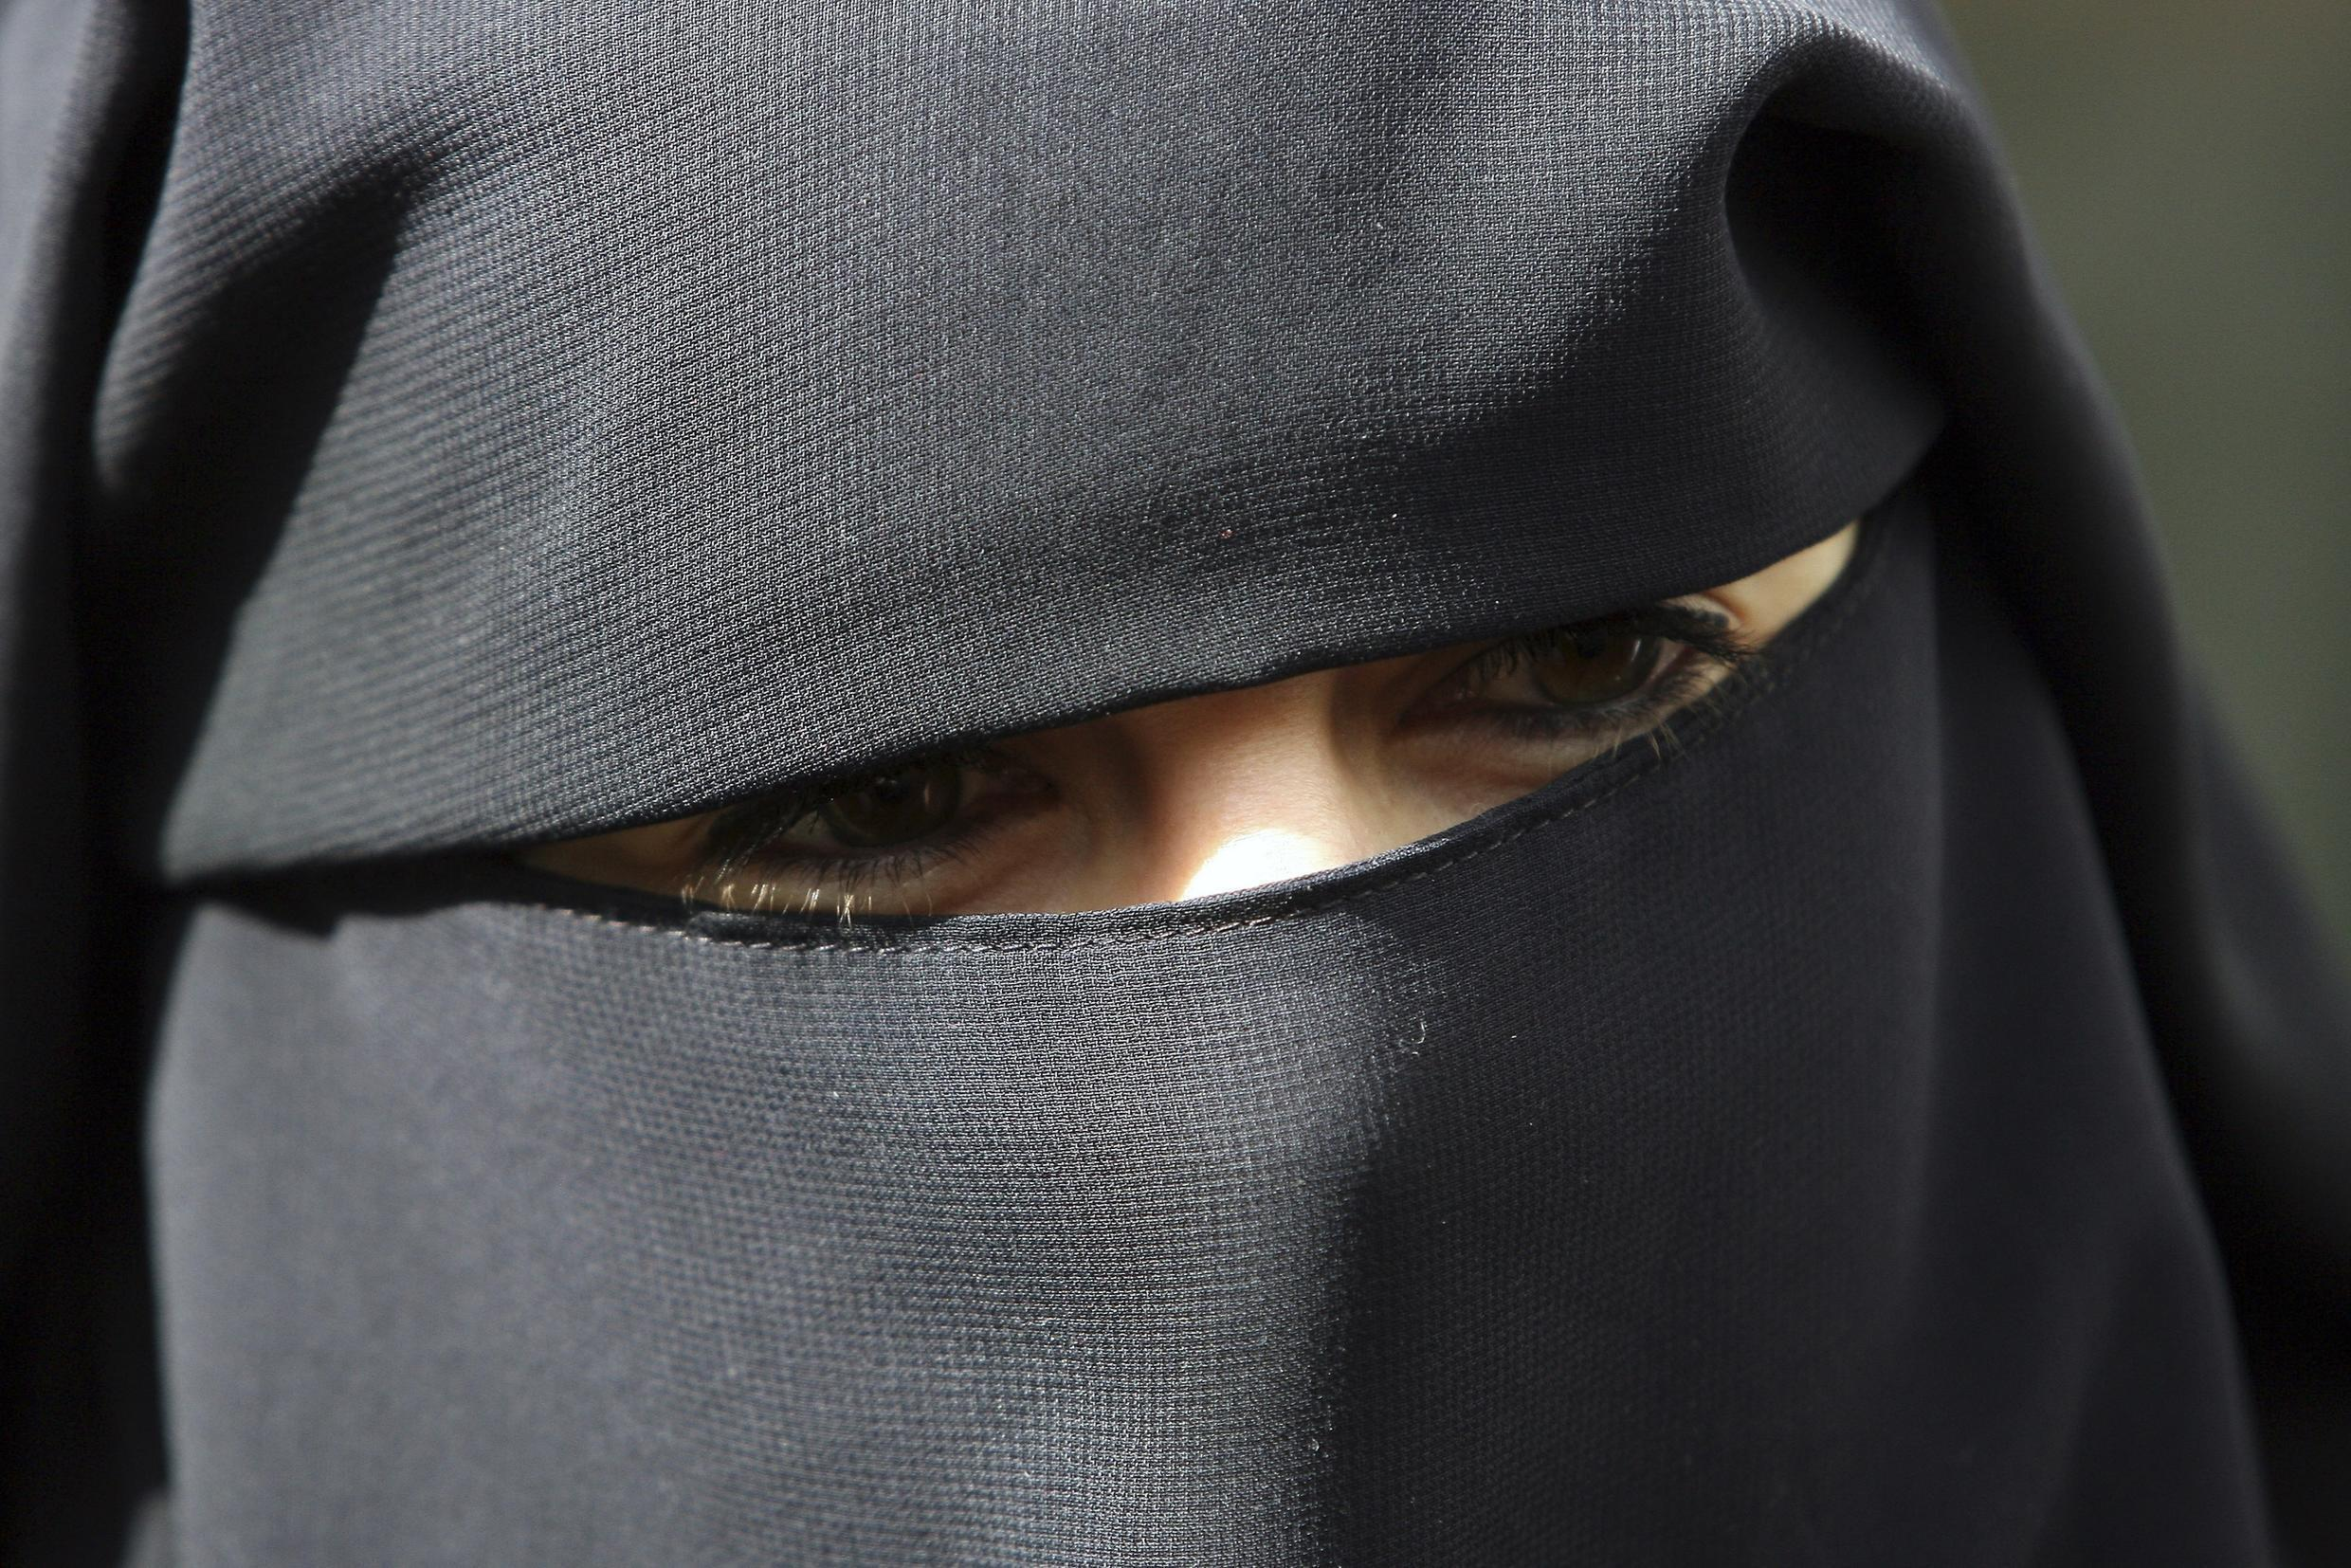 France and Spain could join Belgium in clamping down on full-face veils